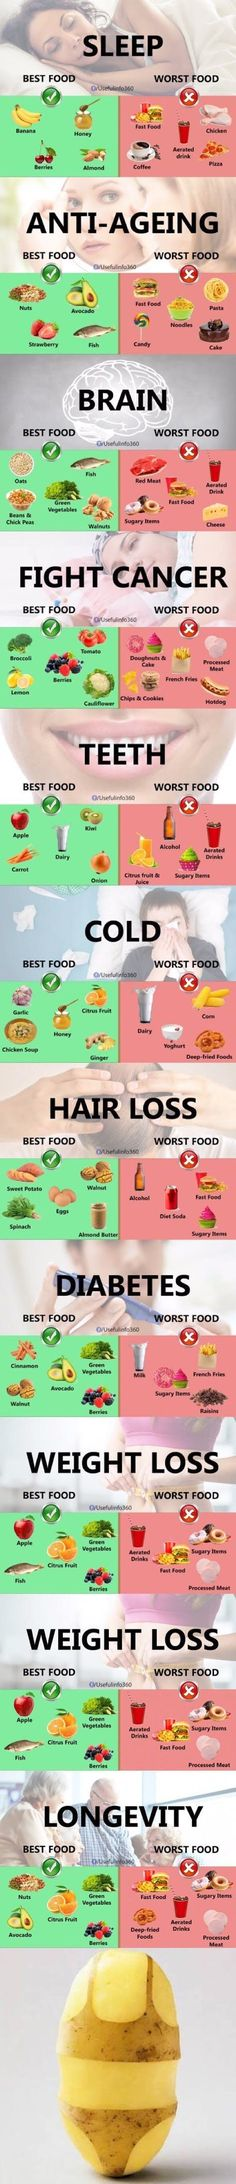 """Fitness Tips Best and worst FOOD 101 More on """"health"""" is on interesting-din . # Fitness Tips Professional Photography Today. Health And Fitness Articles, Nutrition Articles, Health Fitness, Fitness Tips, Health Exercise, Fitness Goals, Health Diet, Health And Nutrition, Health And Wellness"""